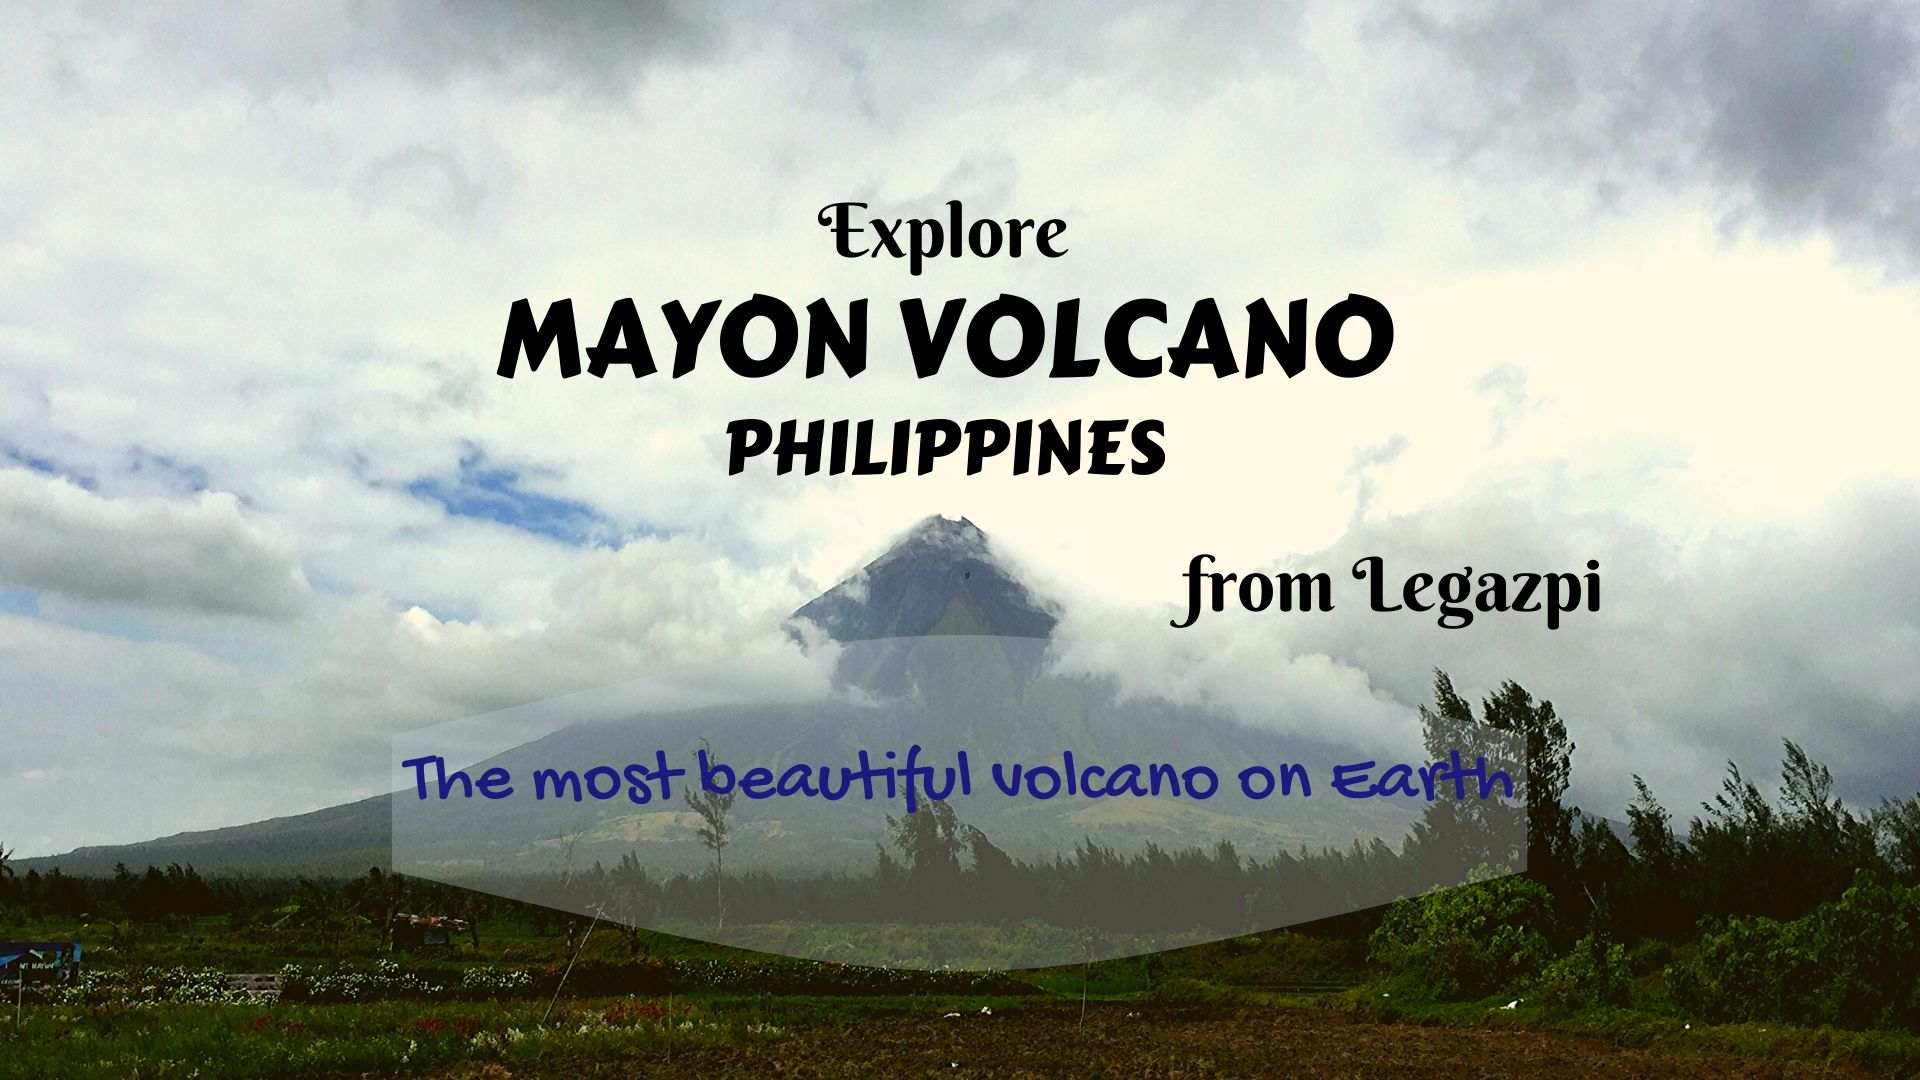 Explore Mayon, the most beautiful volcano on Earth, from Legazpi